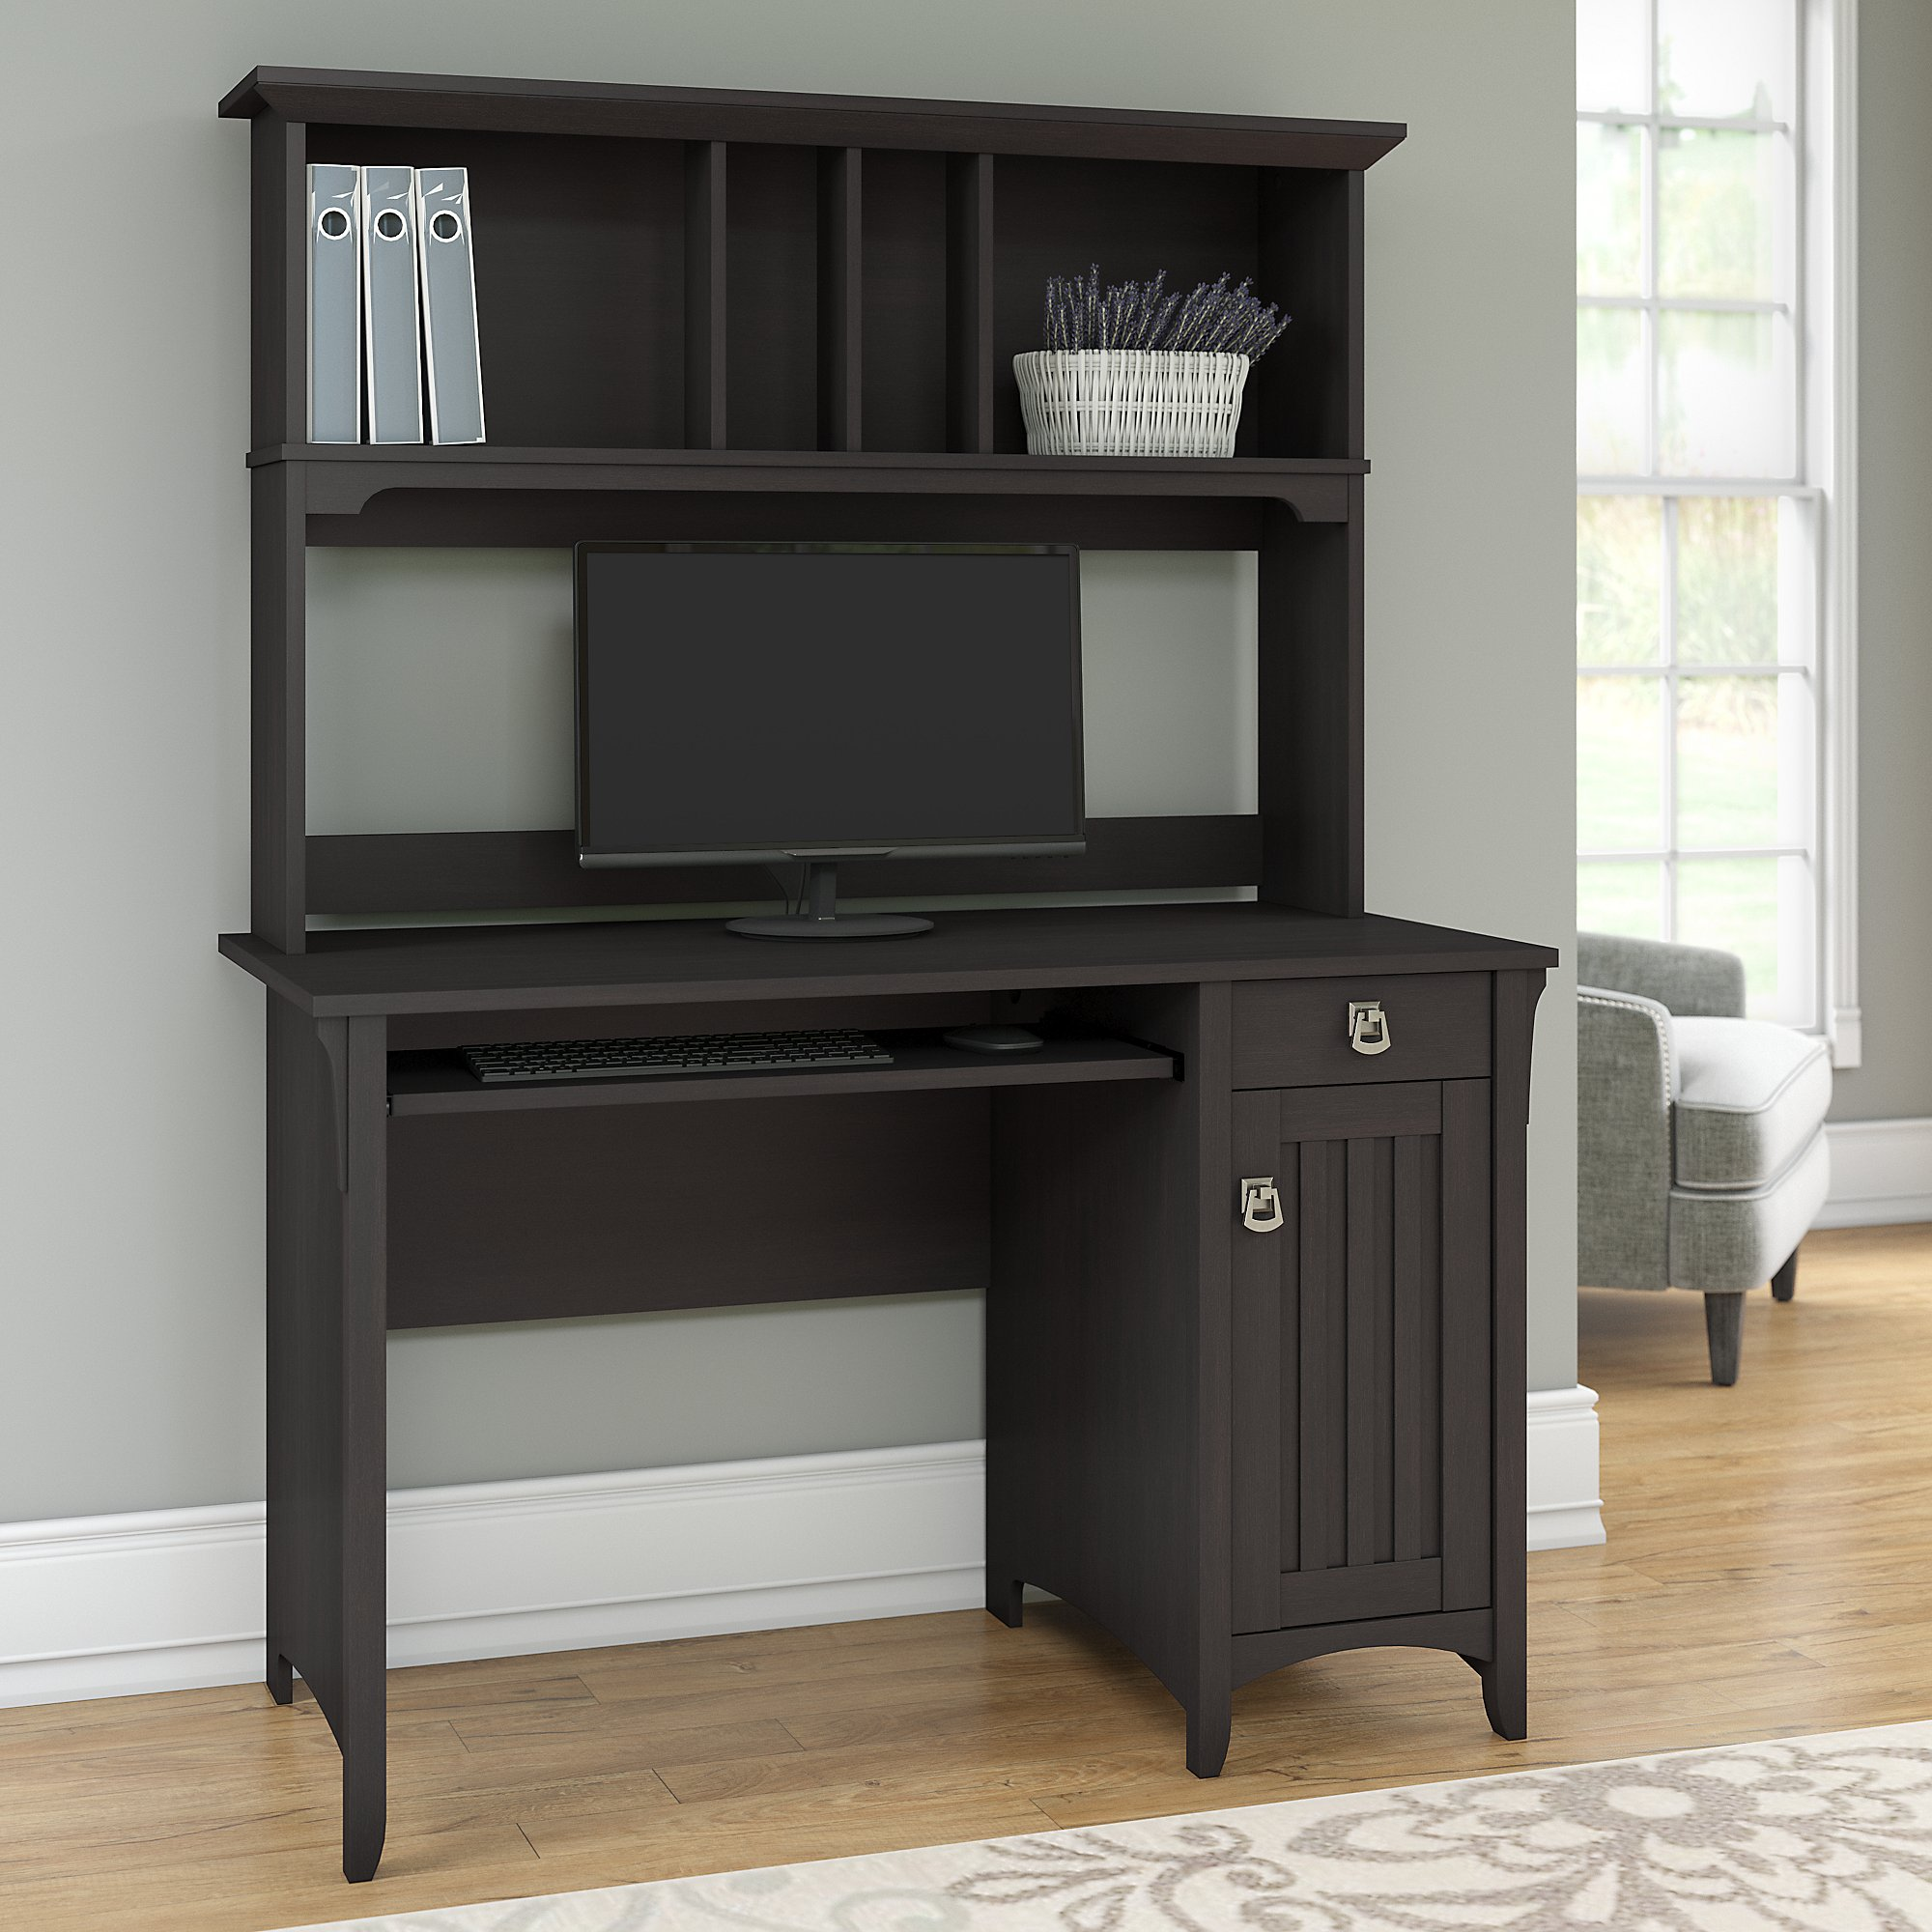 Genial Bush Furniture Salinas Mission Style Desk With Hutch In Vintage Black